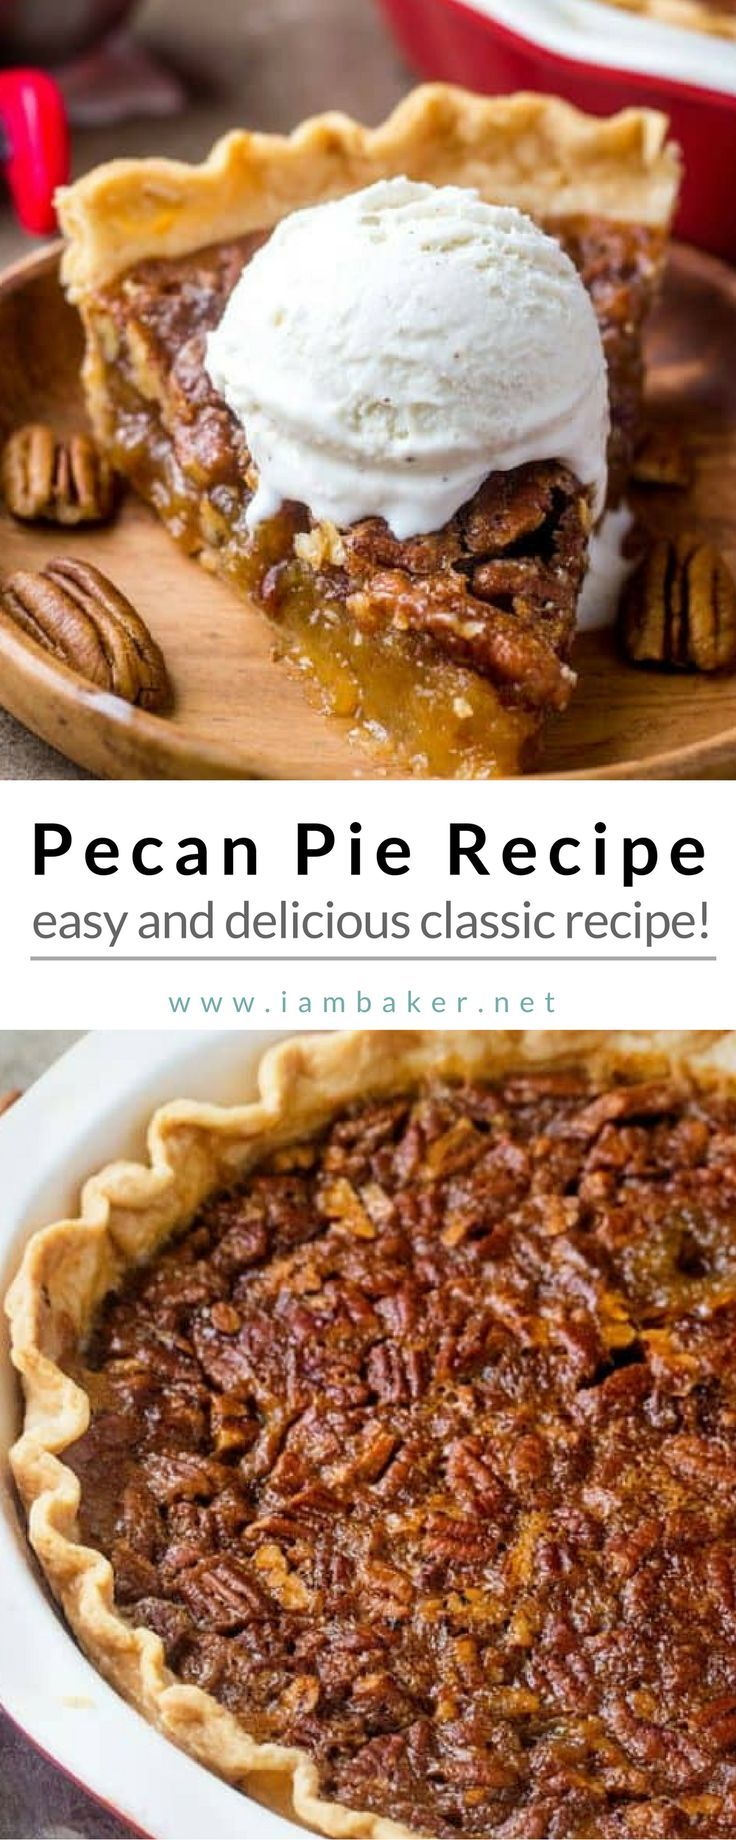 Looking for healthy homemade dessert for your family? This Pecan Pie Recipe is what you're looking for. | I Am Baker For more quick and easy dessert recipes to make, check us out at #iambaker.  #desserts #sweettooth #easyrecipe